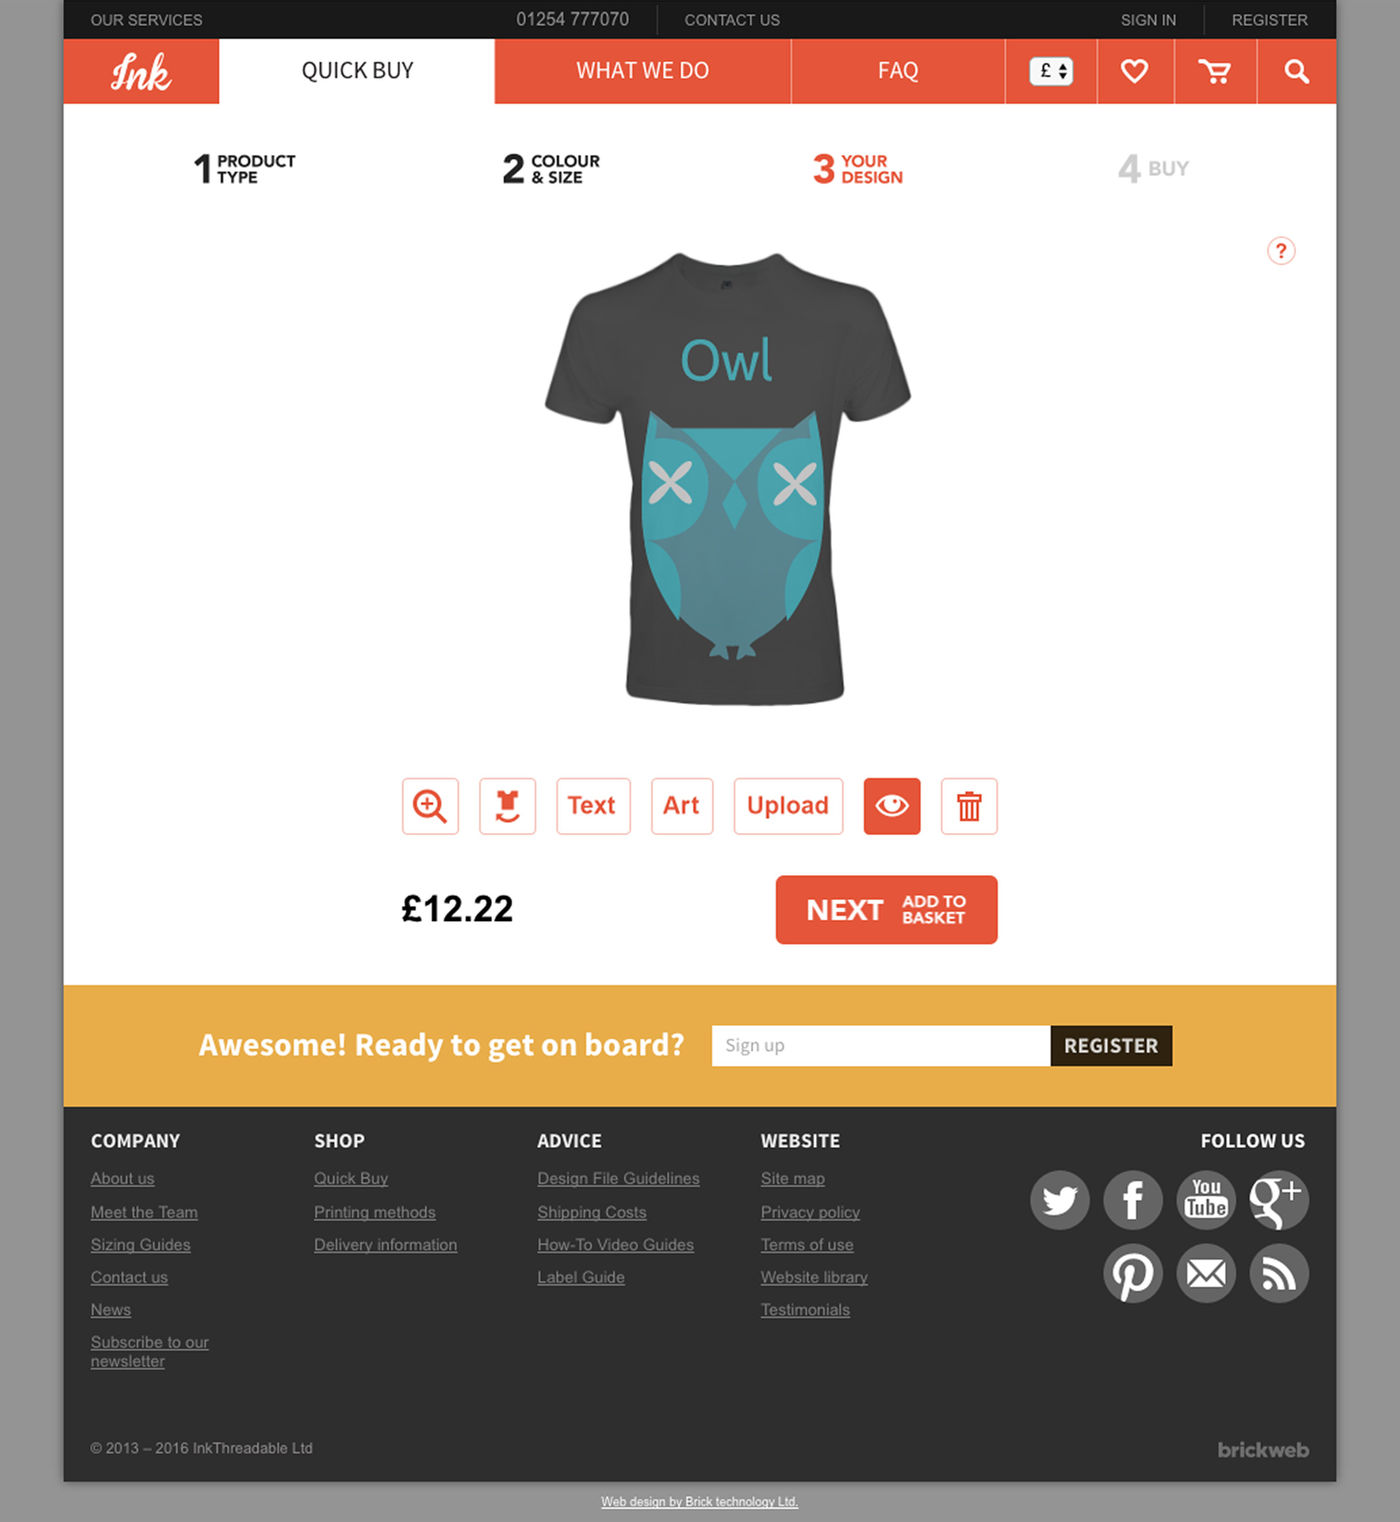 InkThreadable 2013 Product design page